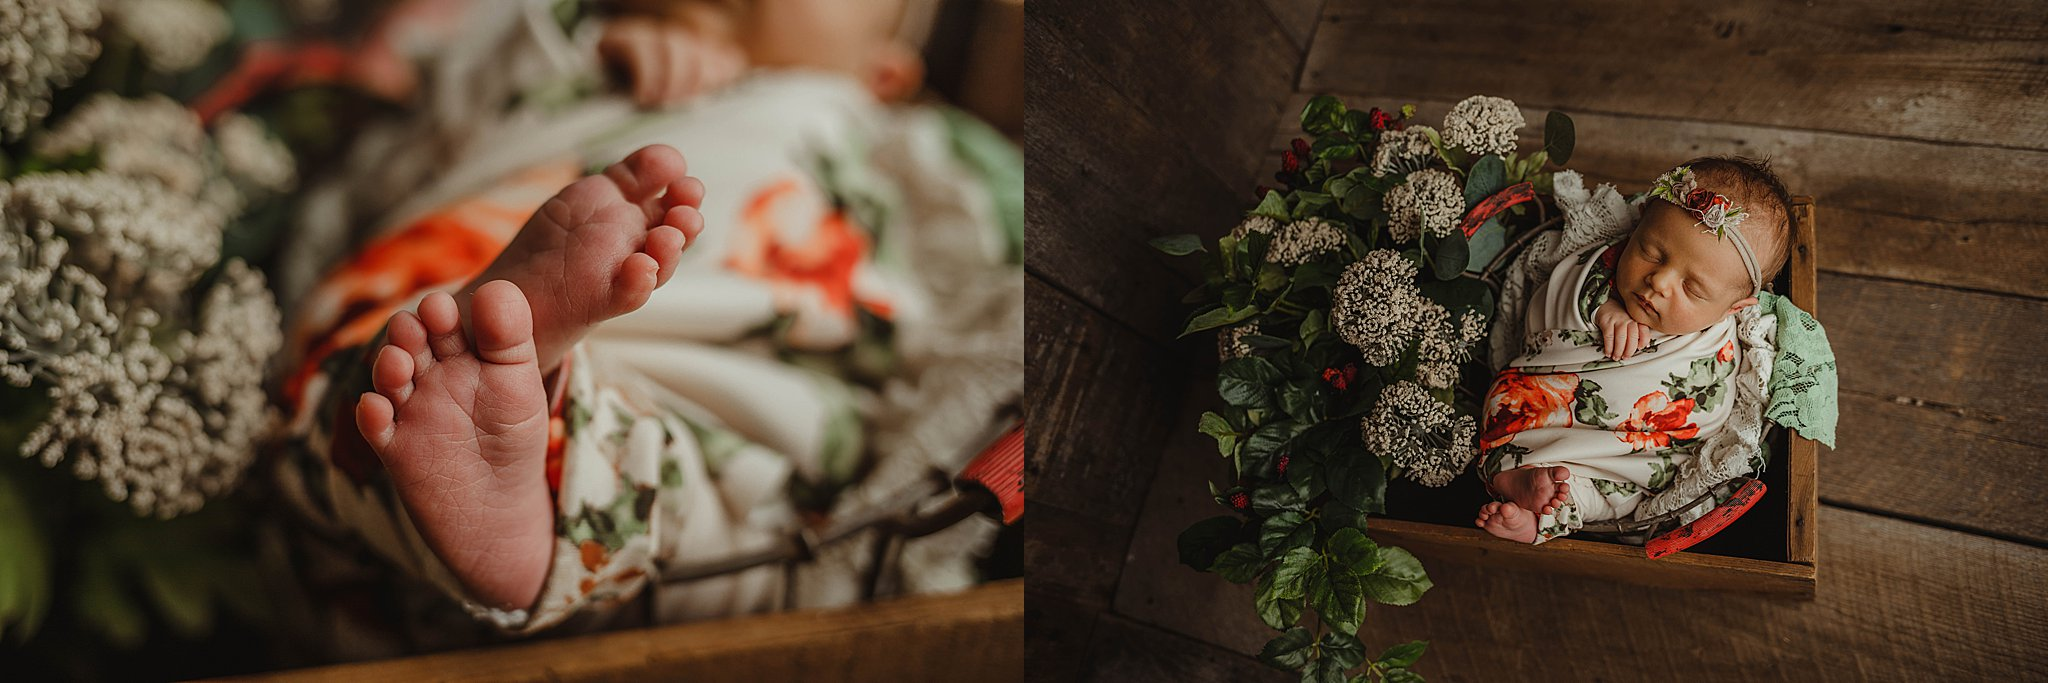 osage-beach-missouri-newborn-photo-studio-flowers-03-11-2019-1.jpg